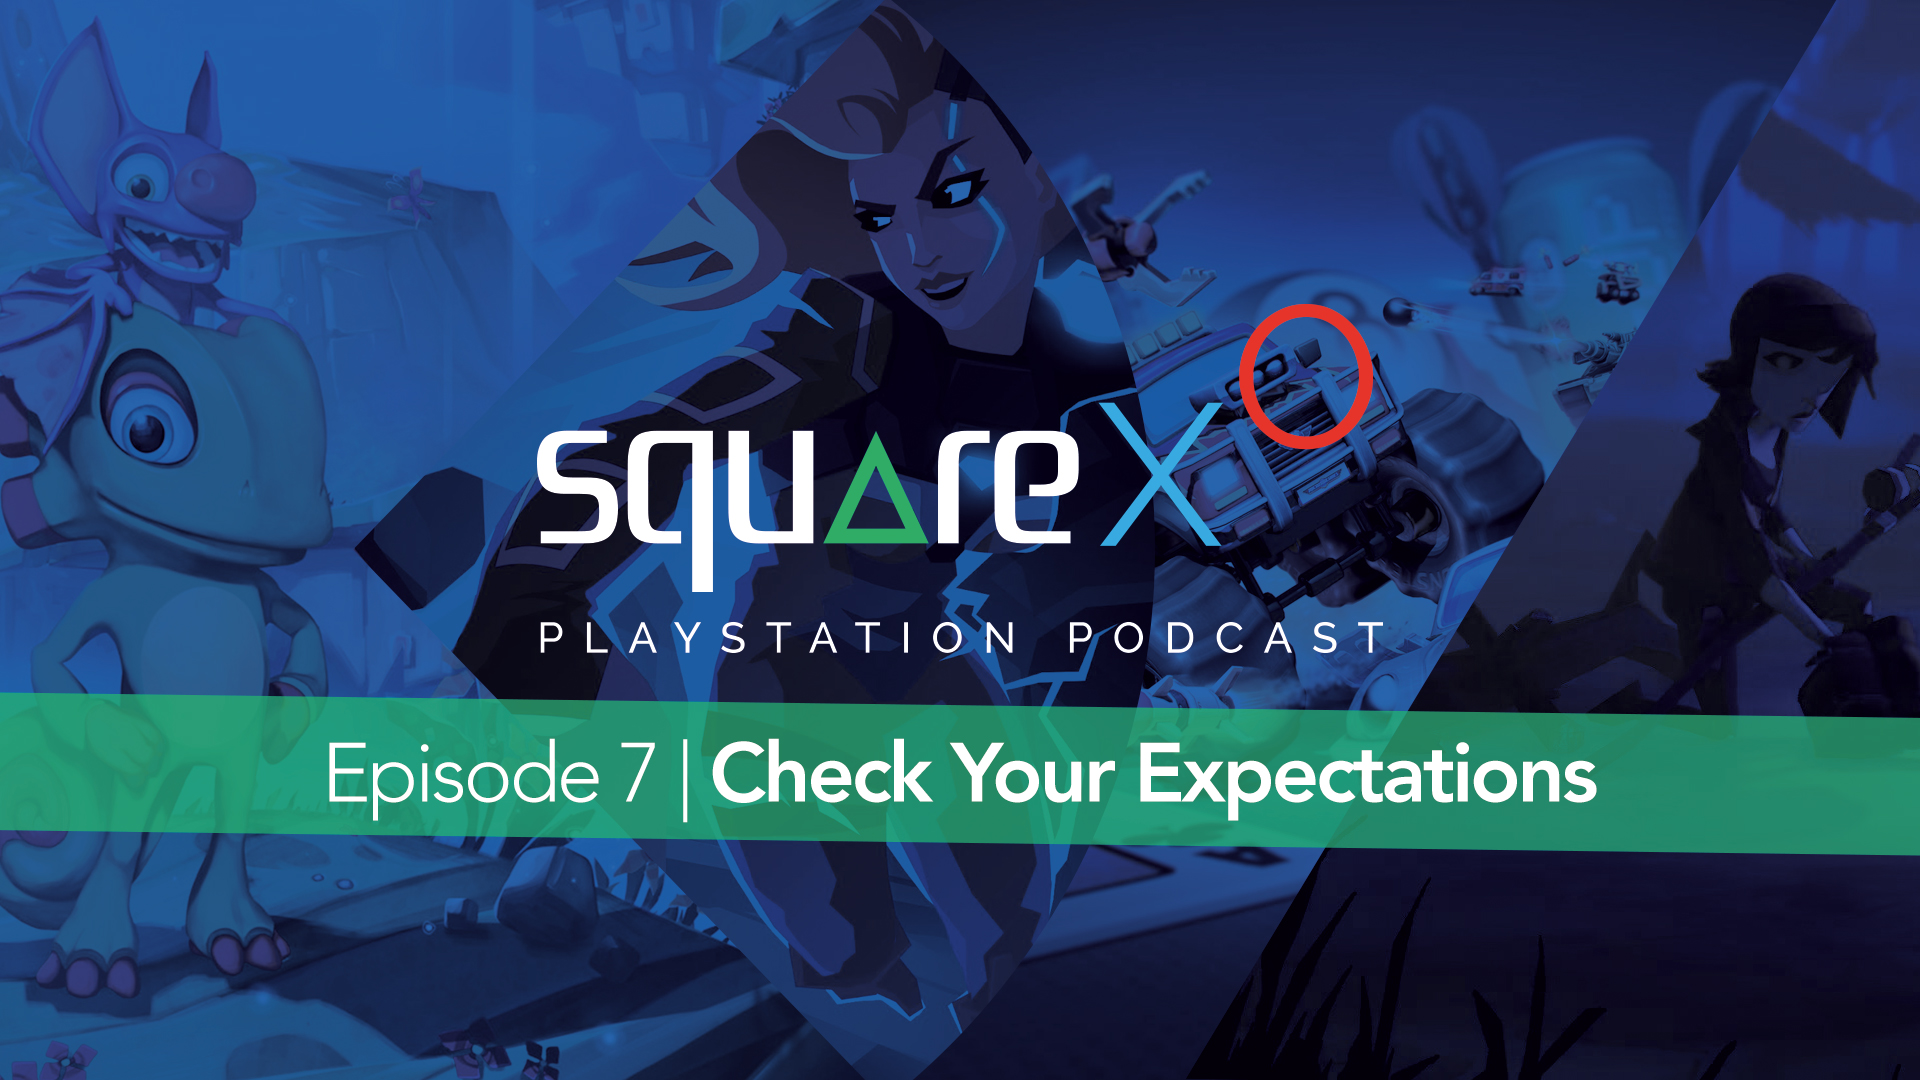 episode 7 check your expectations squarexo episode 7 check your expectations